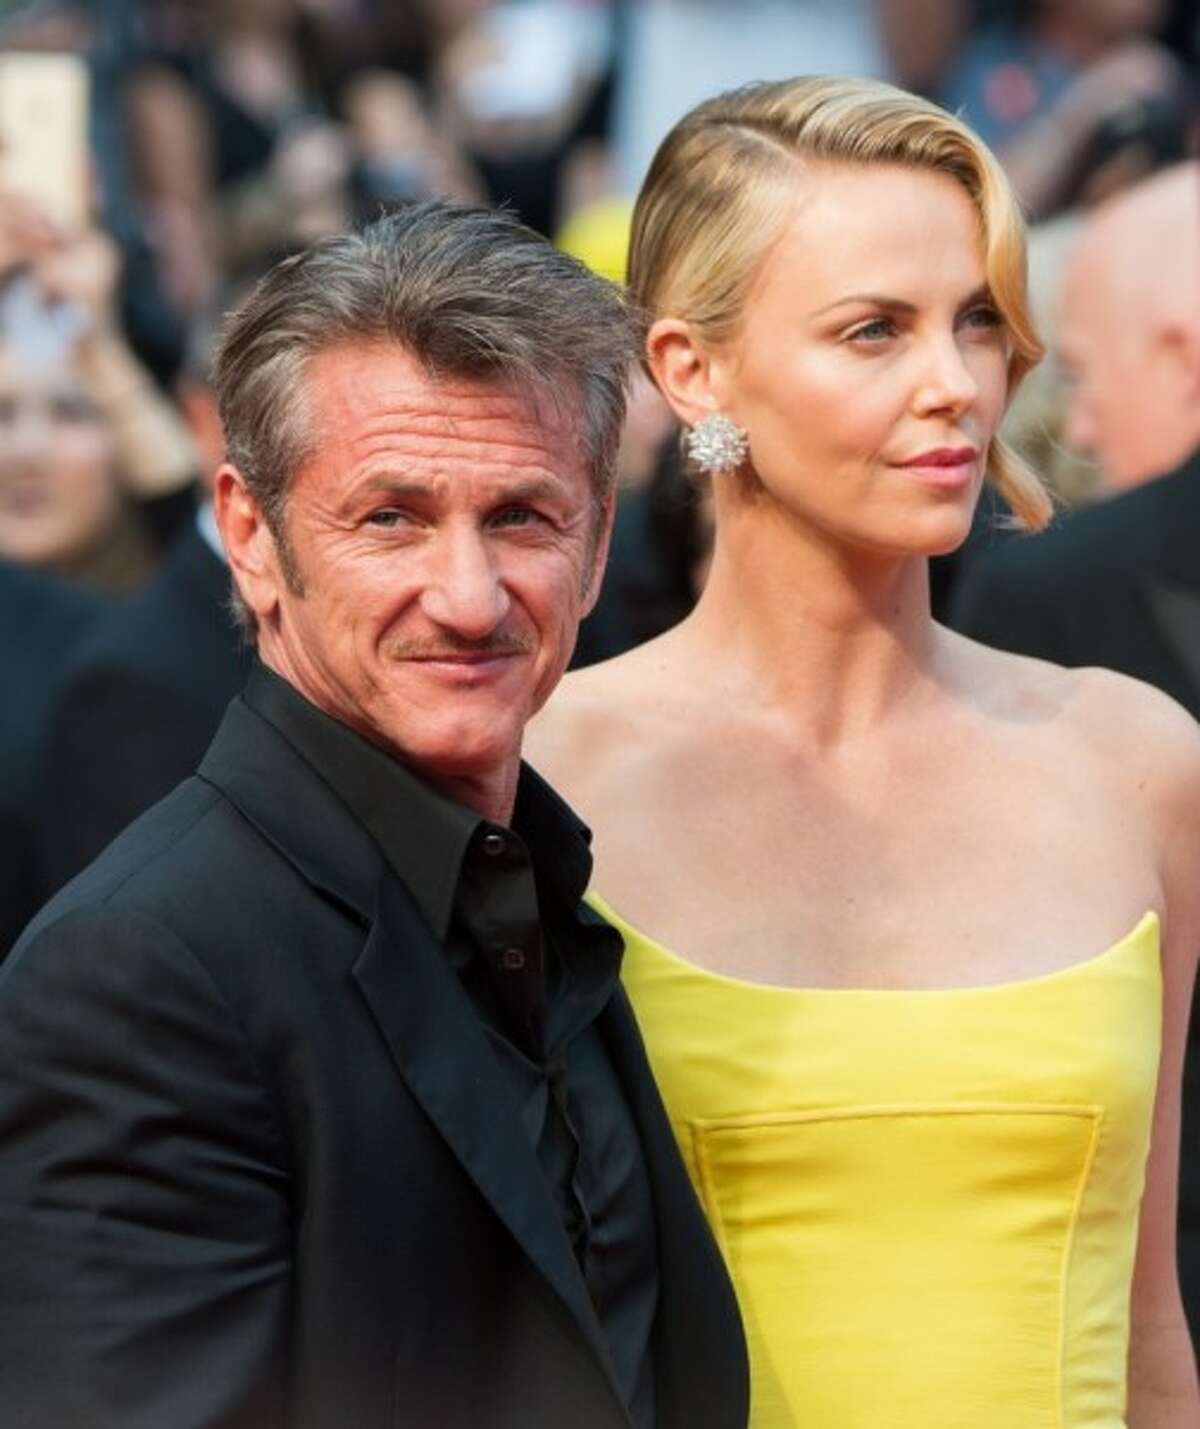 Sean Penn and Charlize Theron at the Cannes Film Festival in May 2015. (Photo by Samir Hussein/WireImage)